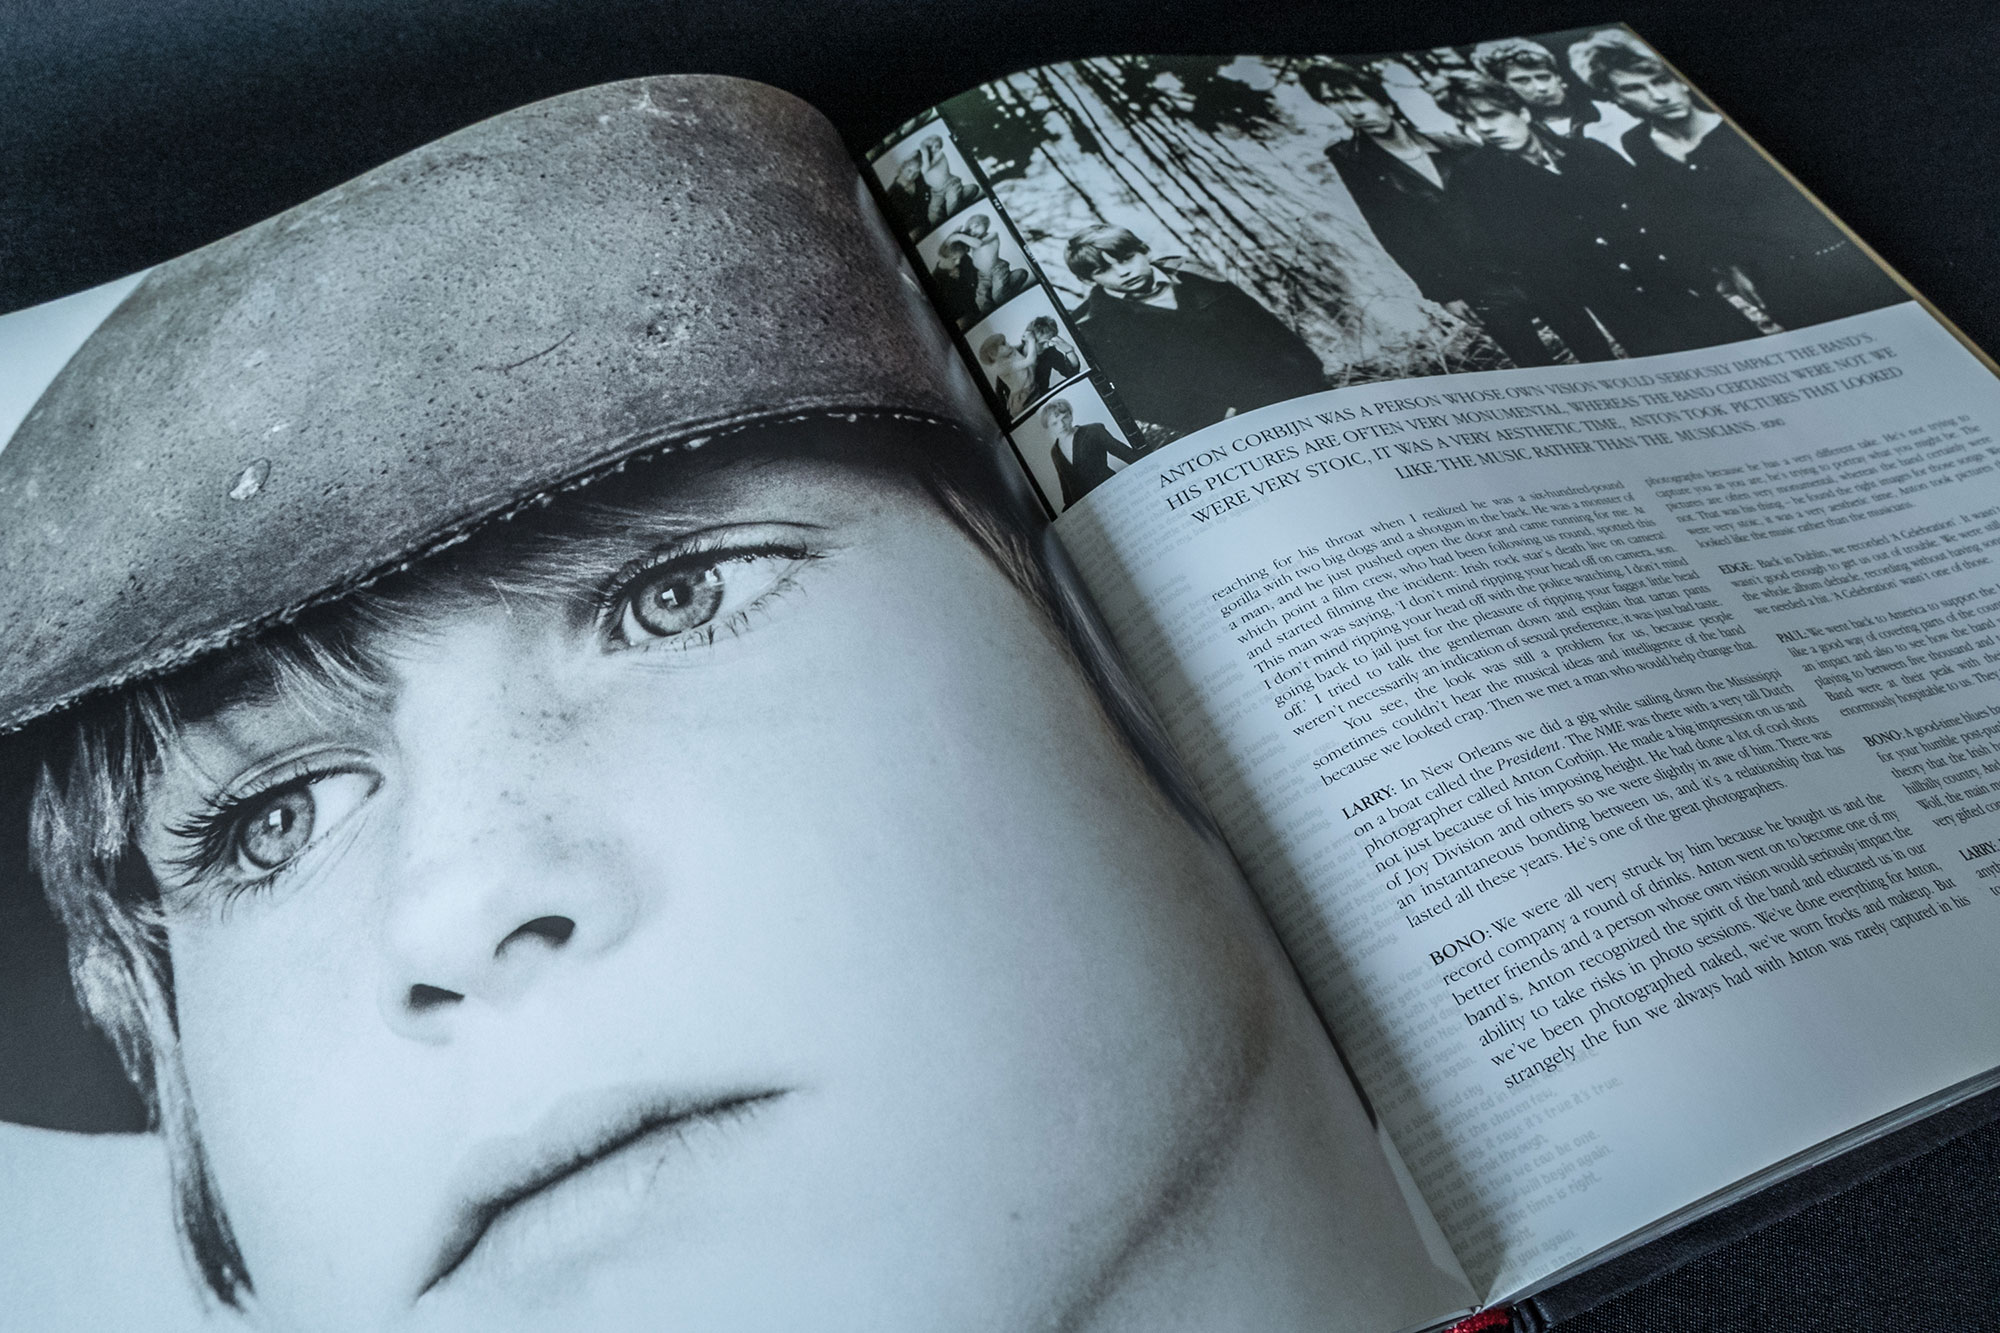 U2 by U2 Book Spread Graphic Design London Dublin War